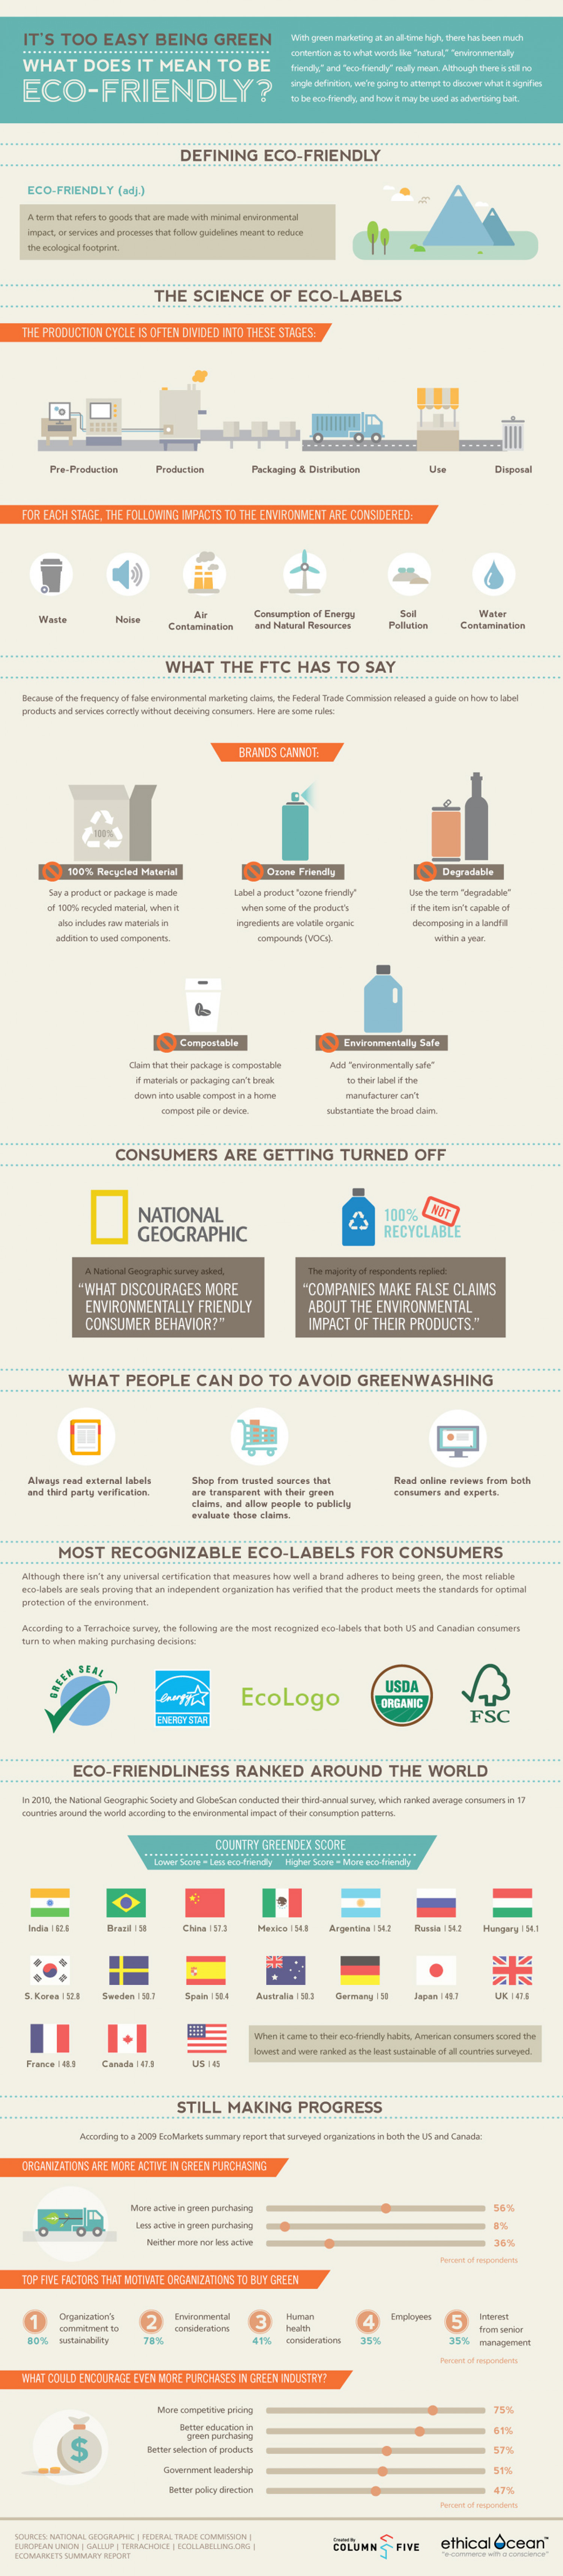 Ethical Ocean: It's Too Easy Being Green Infographic